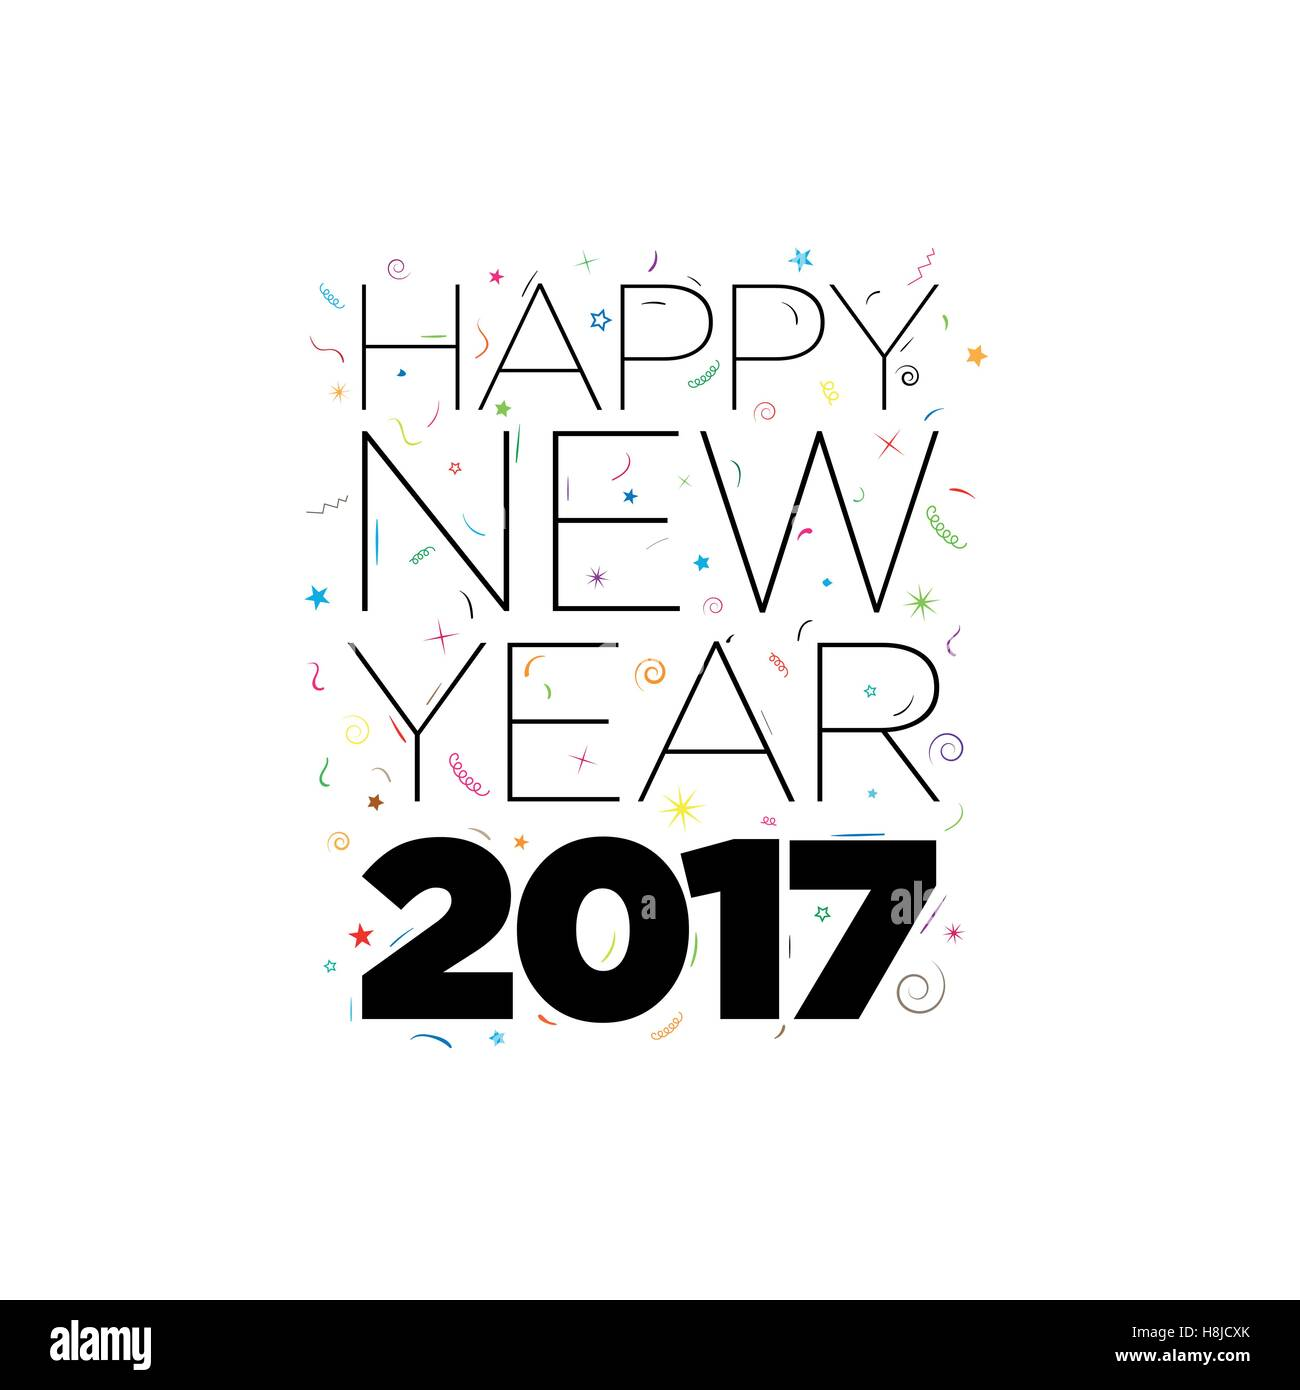 Black Happy New Year 2017 text with confetti elements on white background. Vector typographic design. - Stock Image